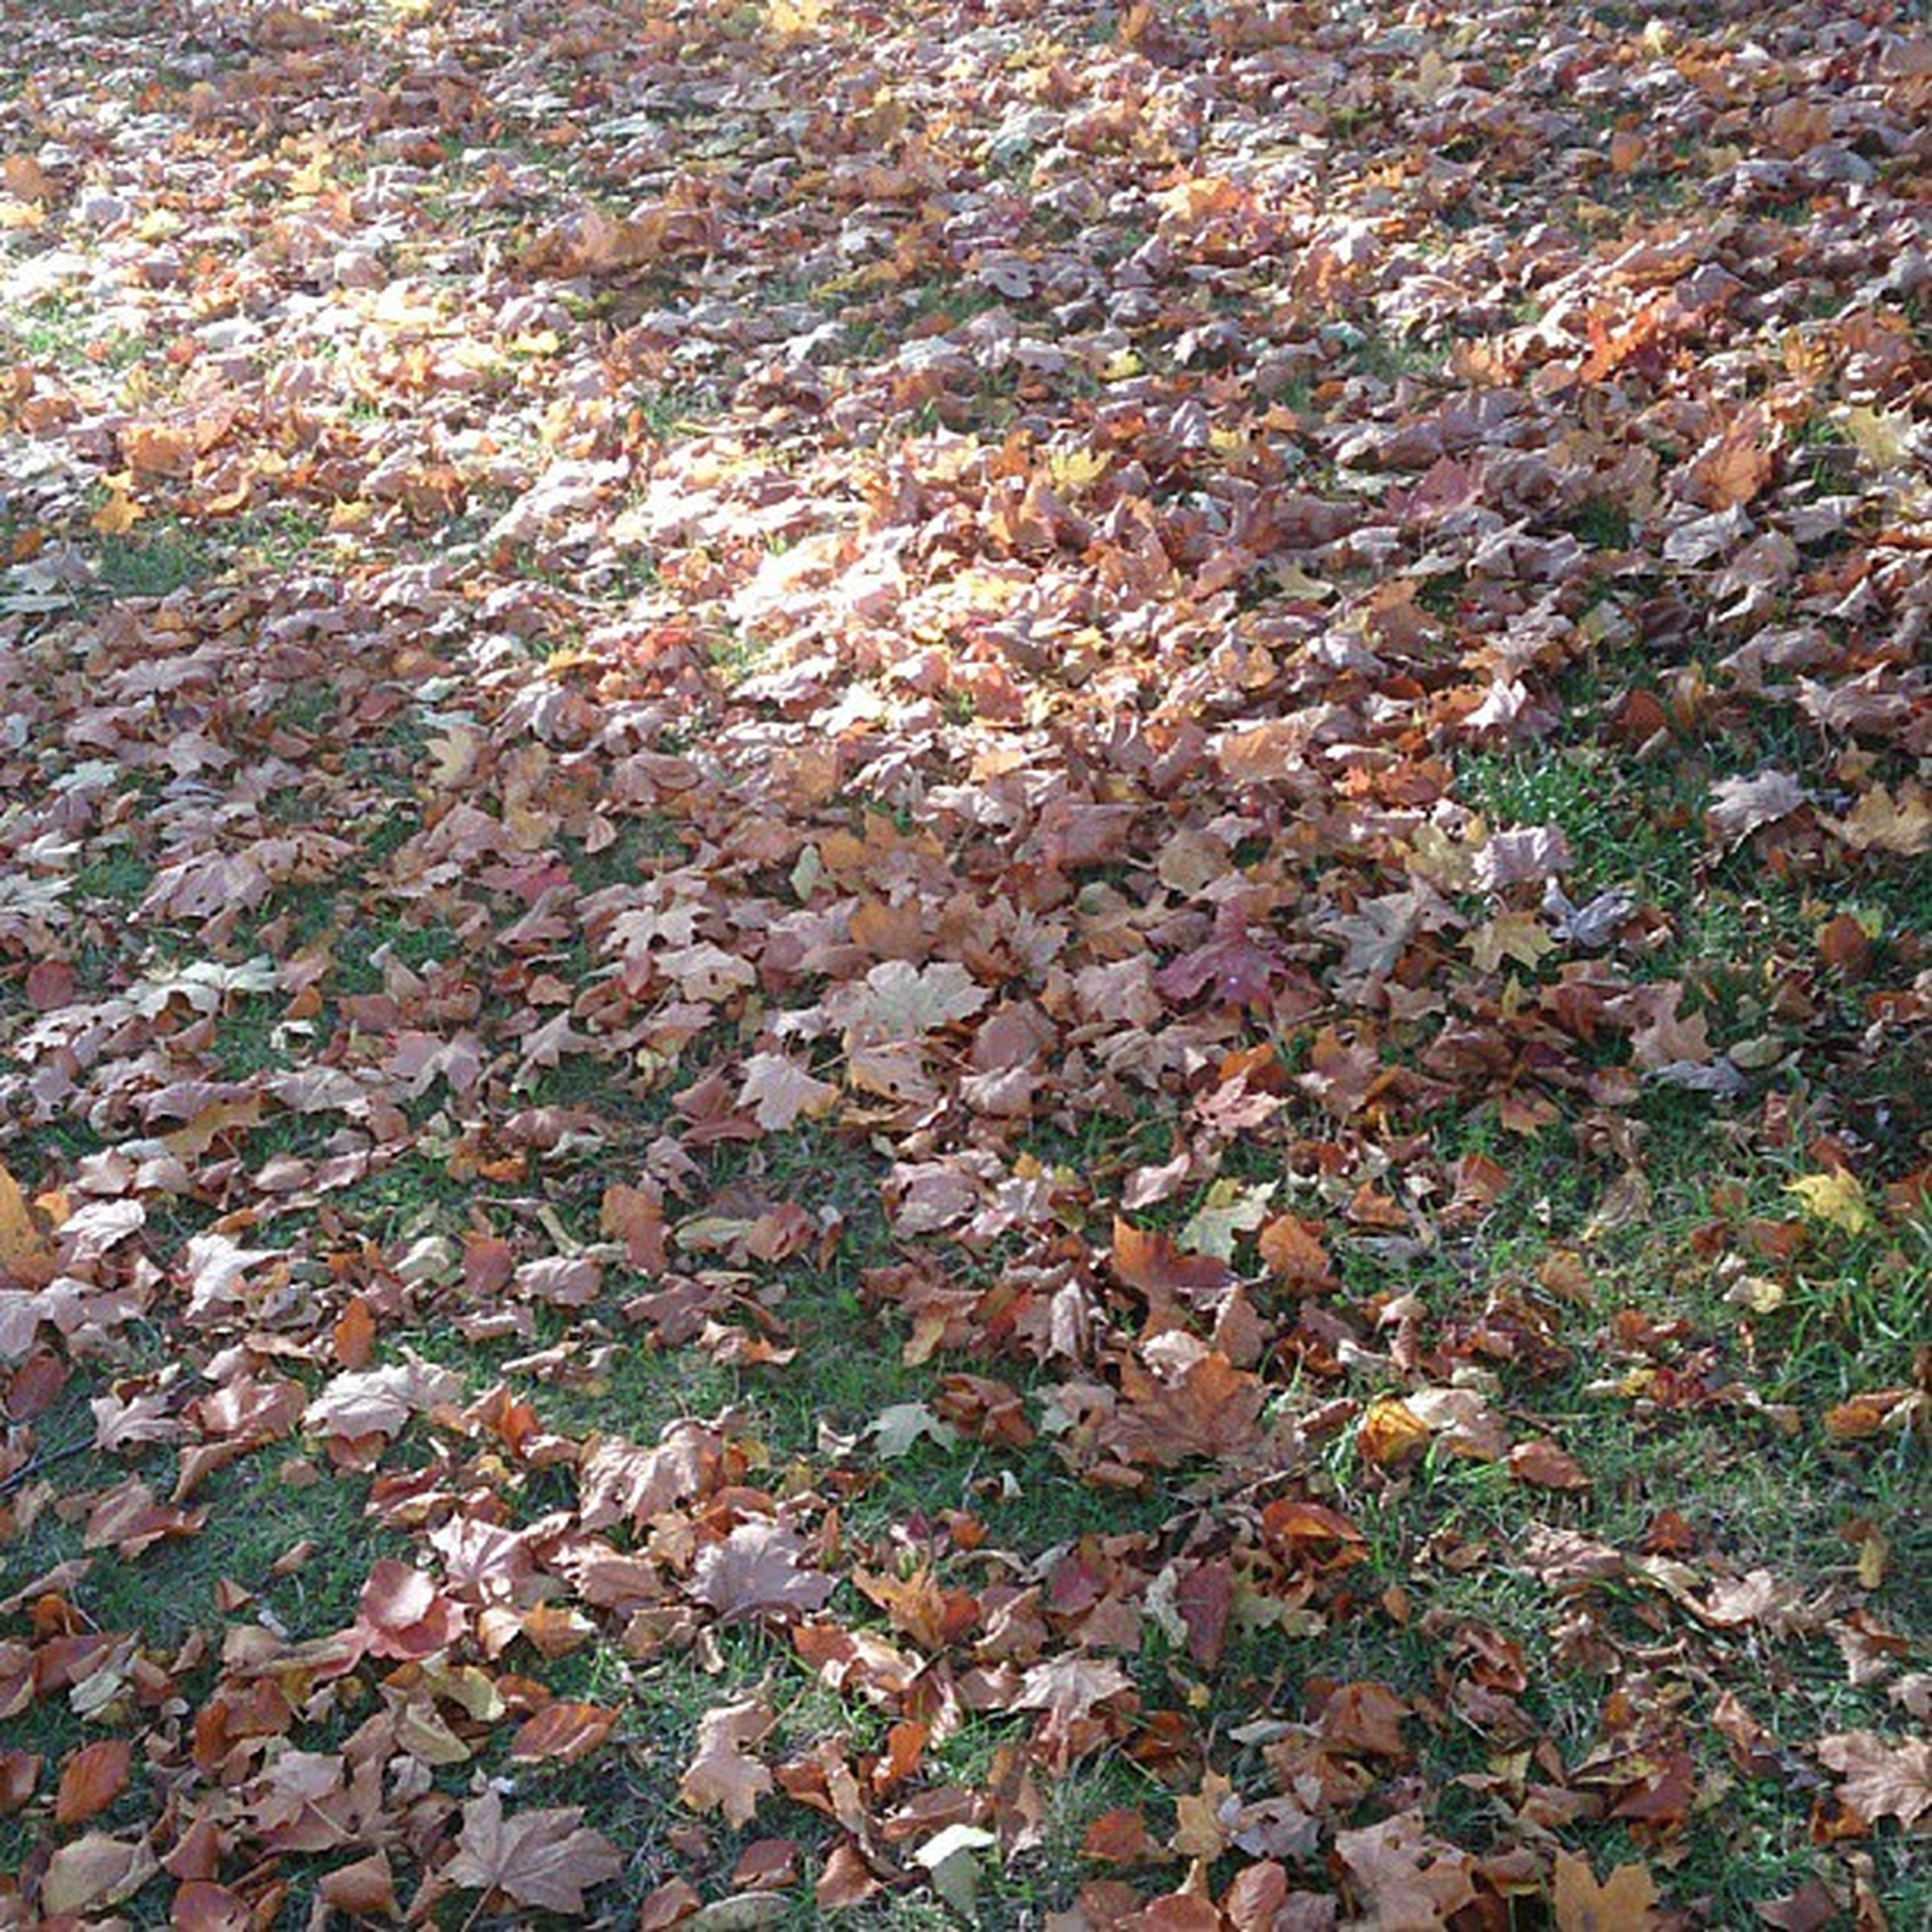 autumn, change, season, leaf, full frame, high angle view, backgrounds, leaves, nature, fallen, tranquility, abundance, dry, field, day, beauty in nature, outdoors, no people, falling, orange color